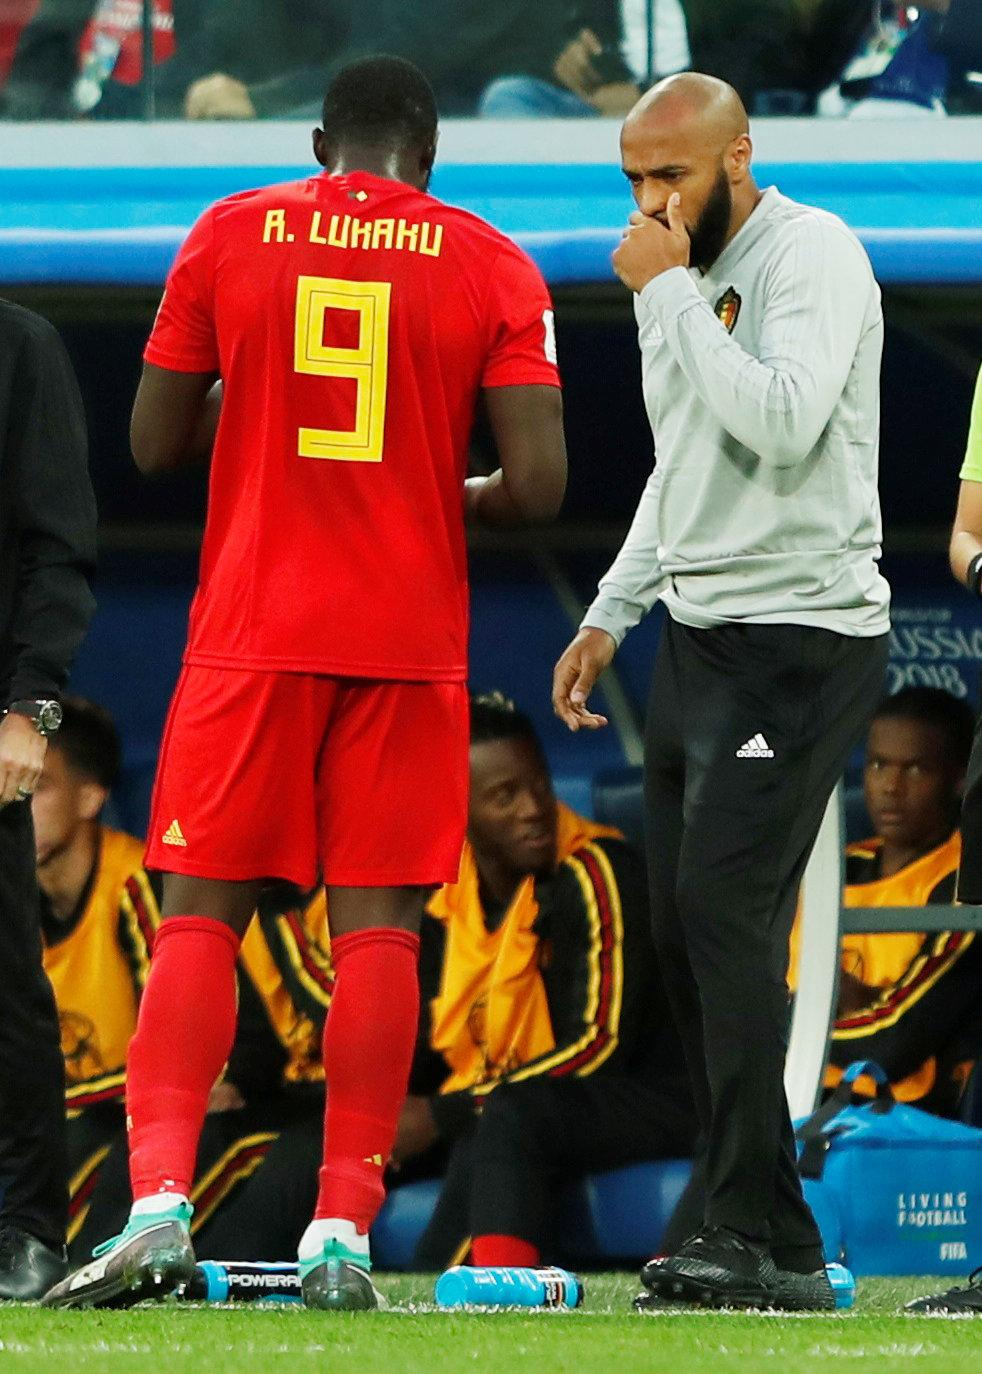 Thierry Henry has played a major role in helping nurture the talent of Lukaku